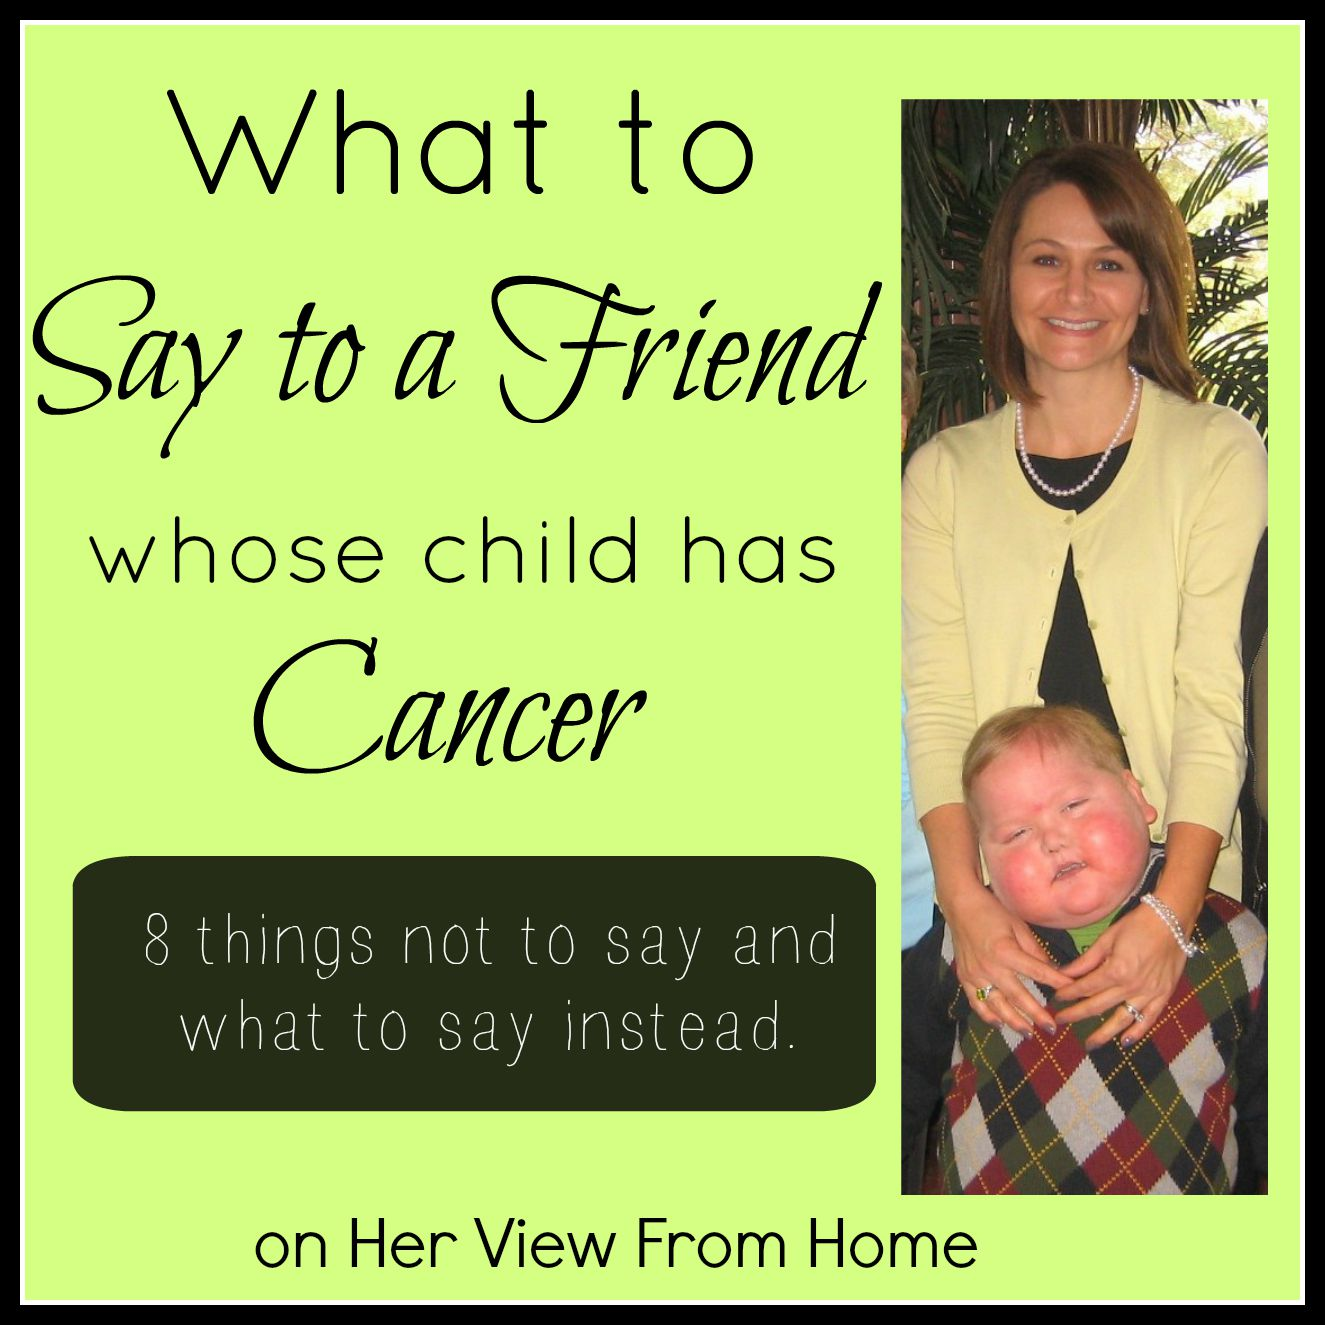 What To Say To A Friend Whose Child Has Cancer